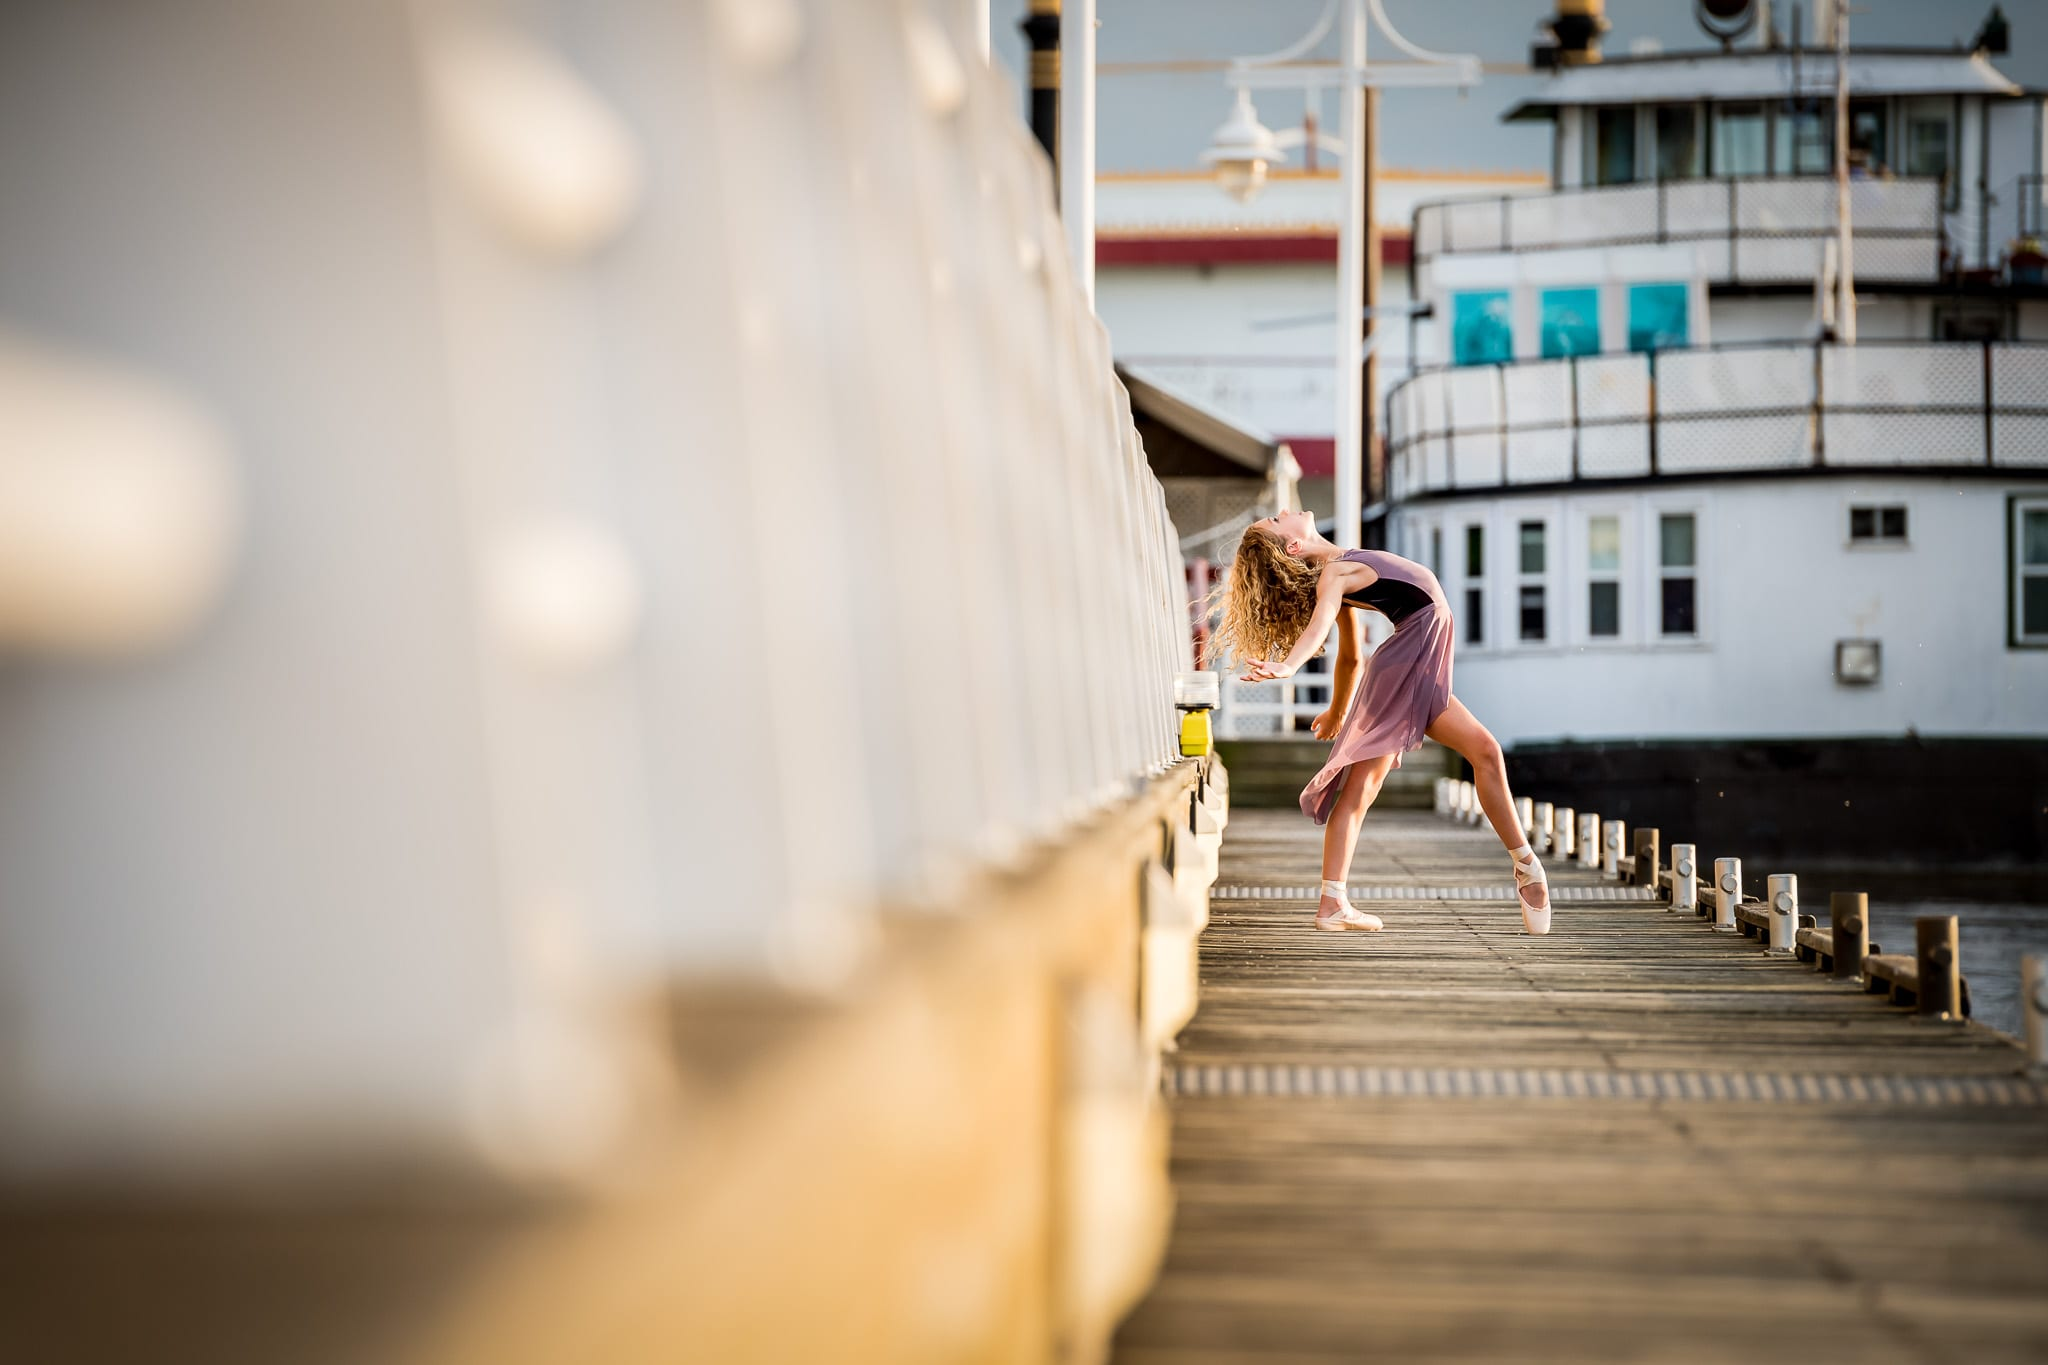 A young ballerina dancer in a back bend on the boat docks at Harriet Island